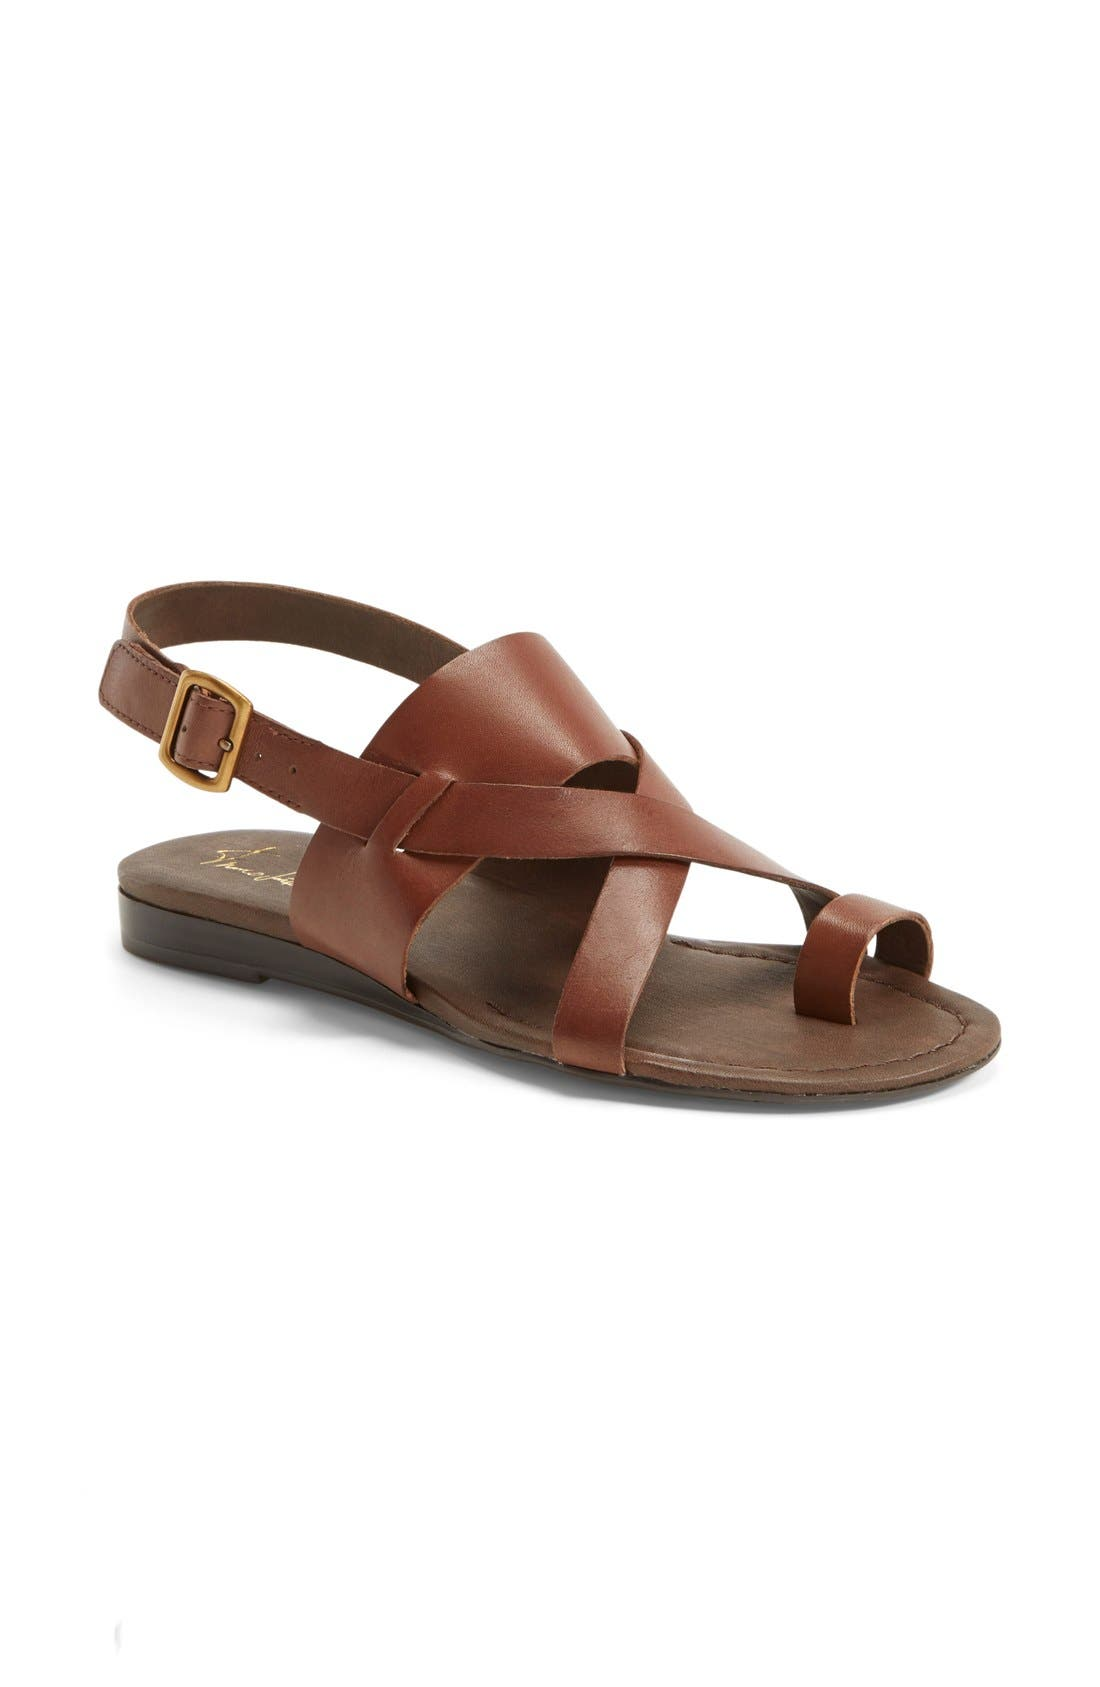 Gia Sandal,                             Alternate thumbnail 3, color,                             Chocolate Antanado